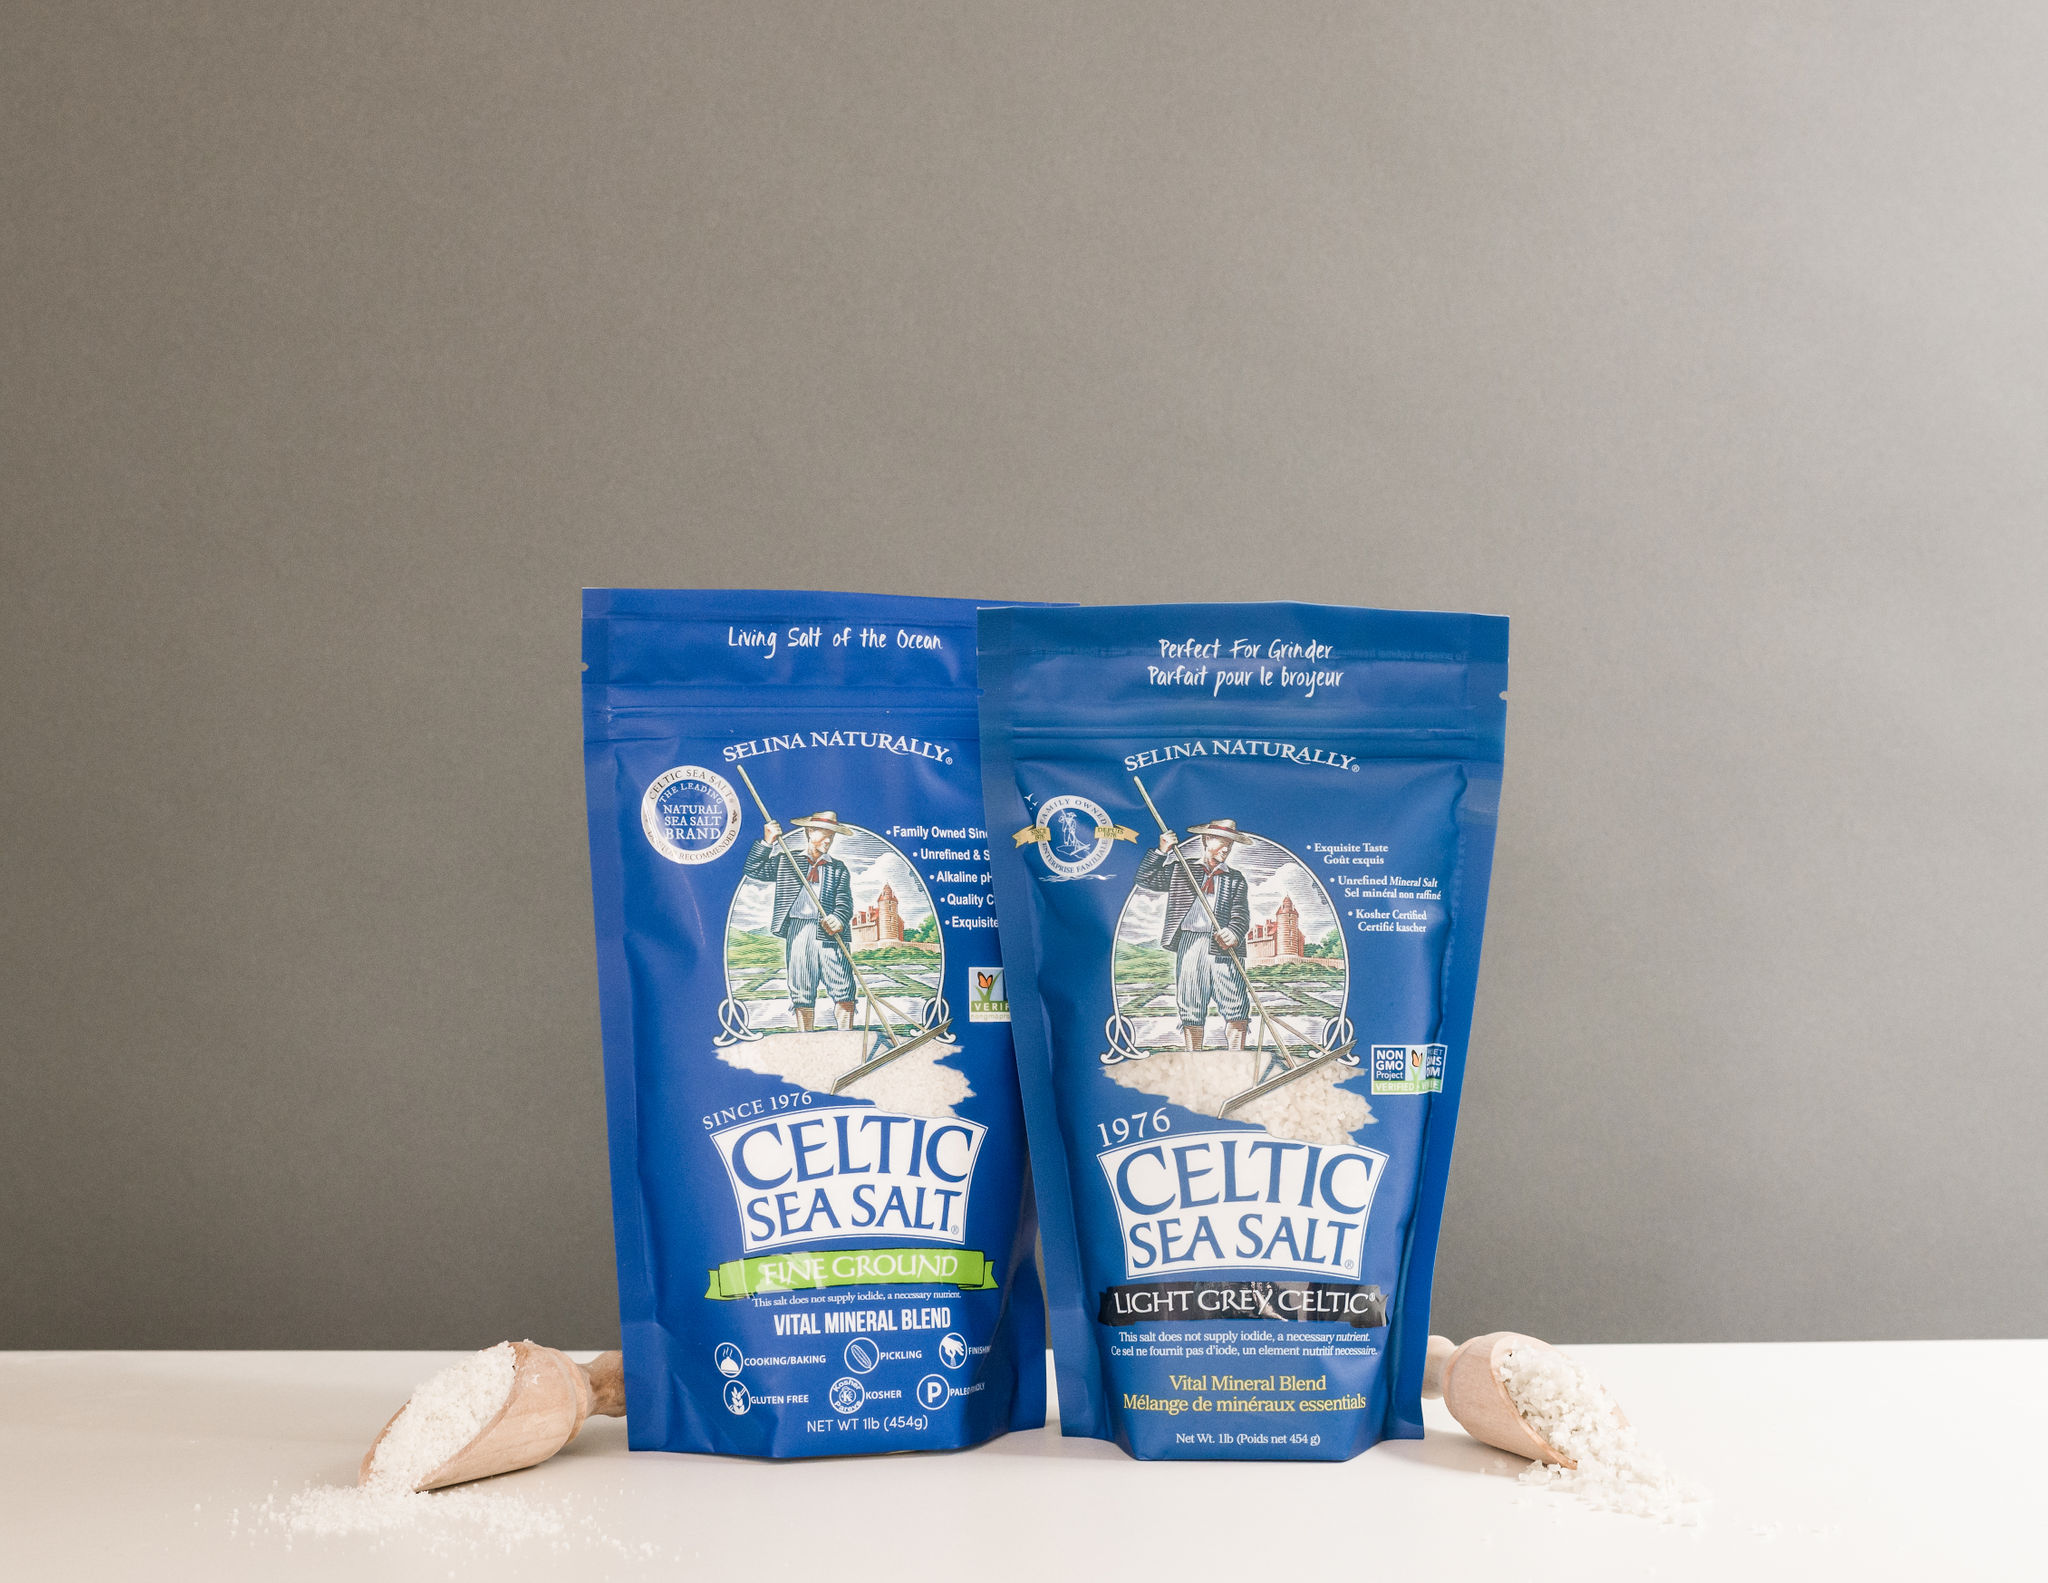 2 celtic sea salt bags